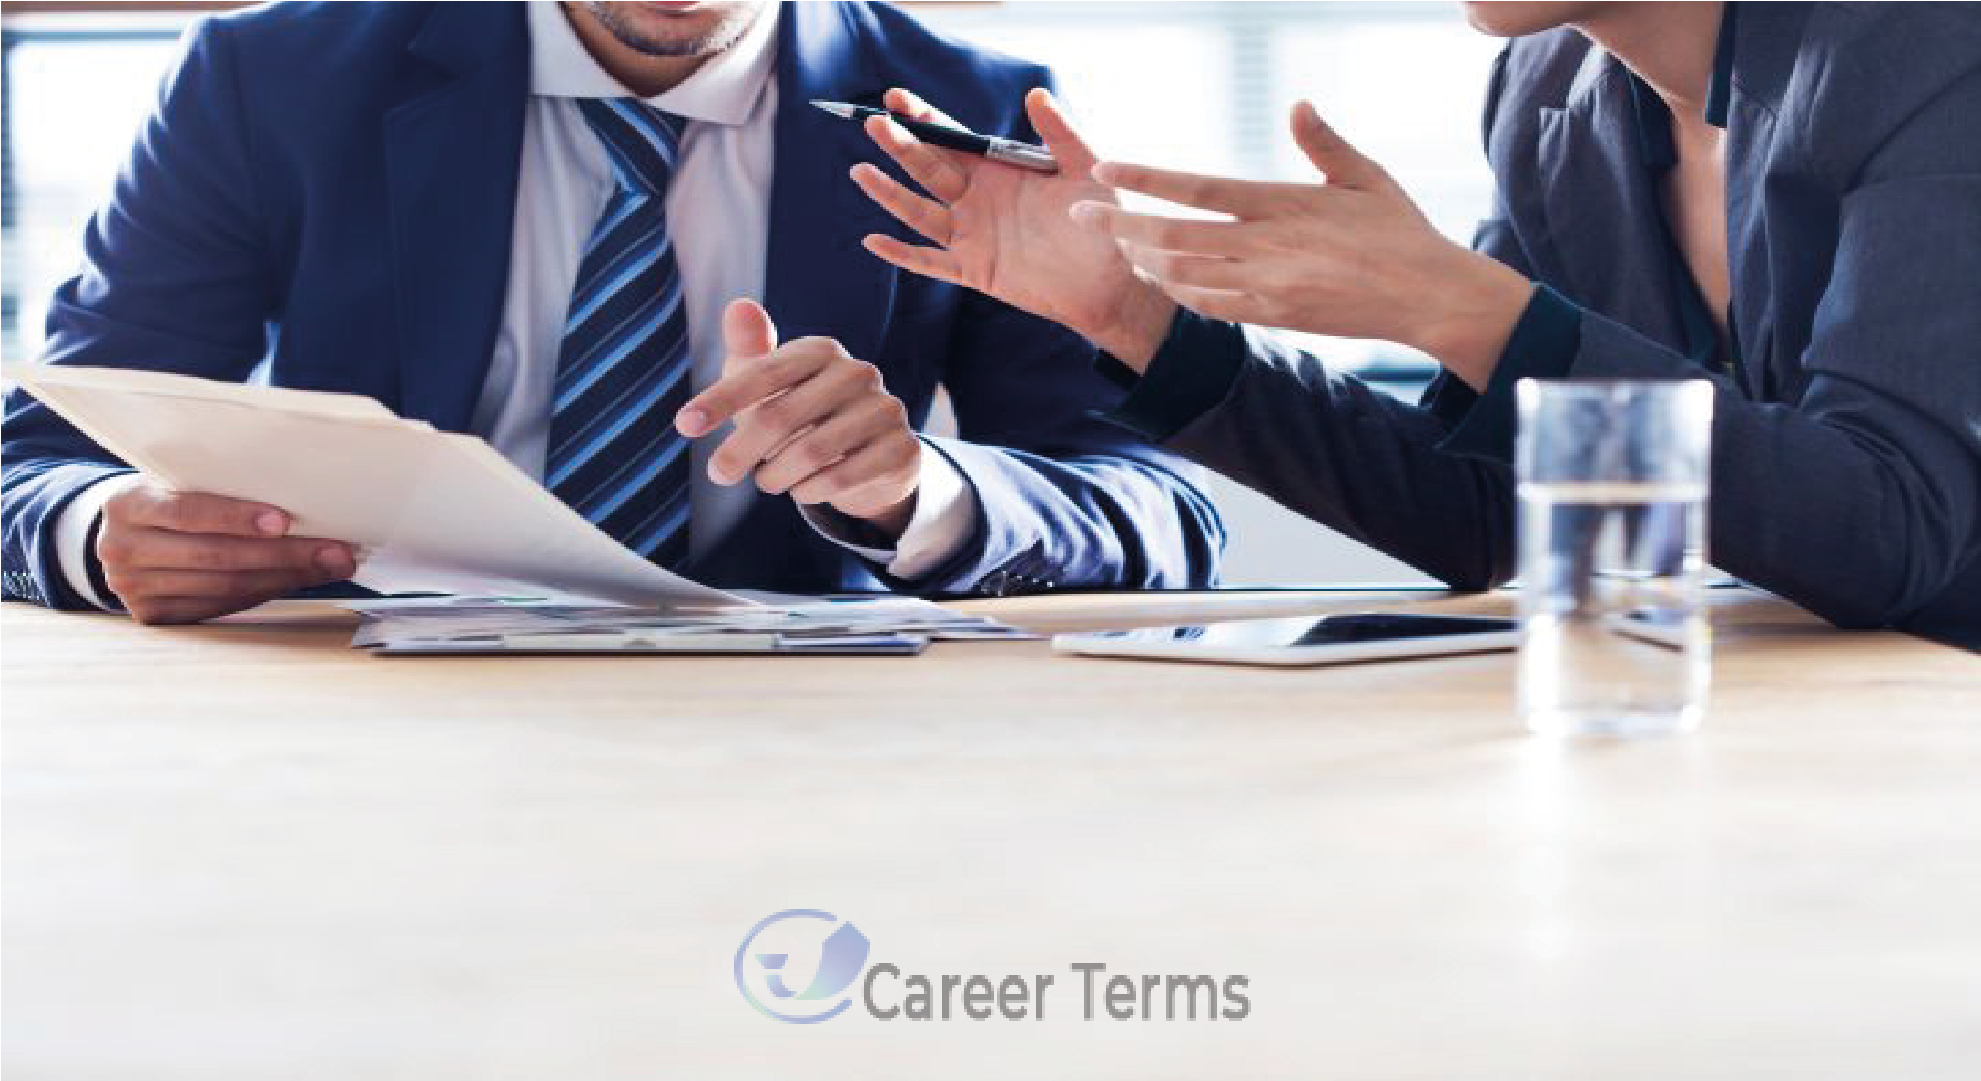 Examine Importance of Terms and Conditions of Employment